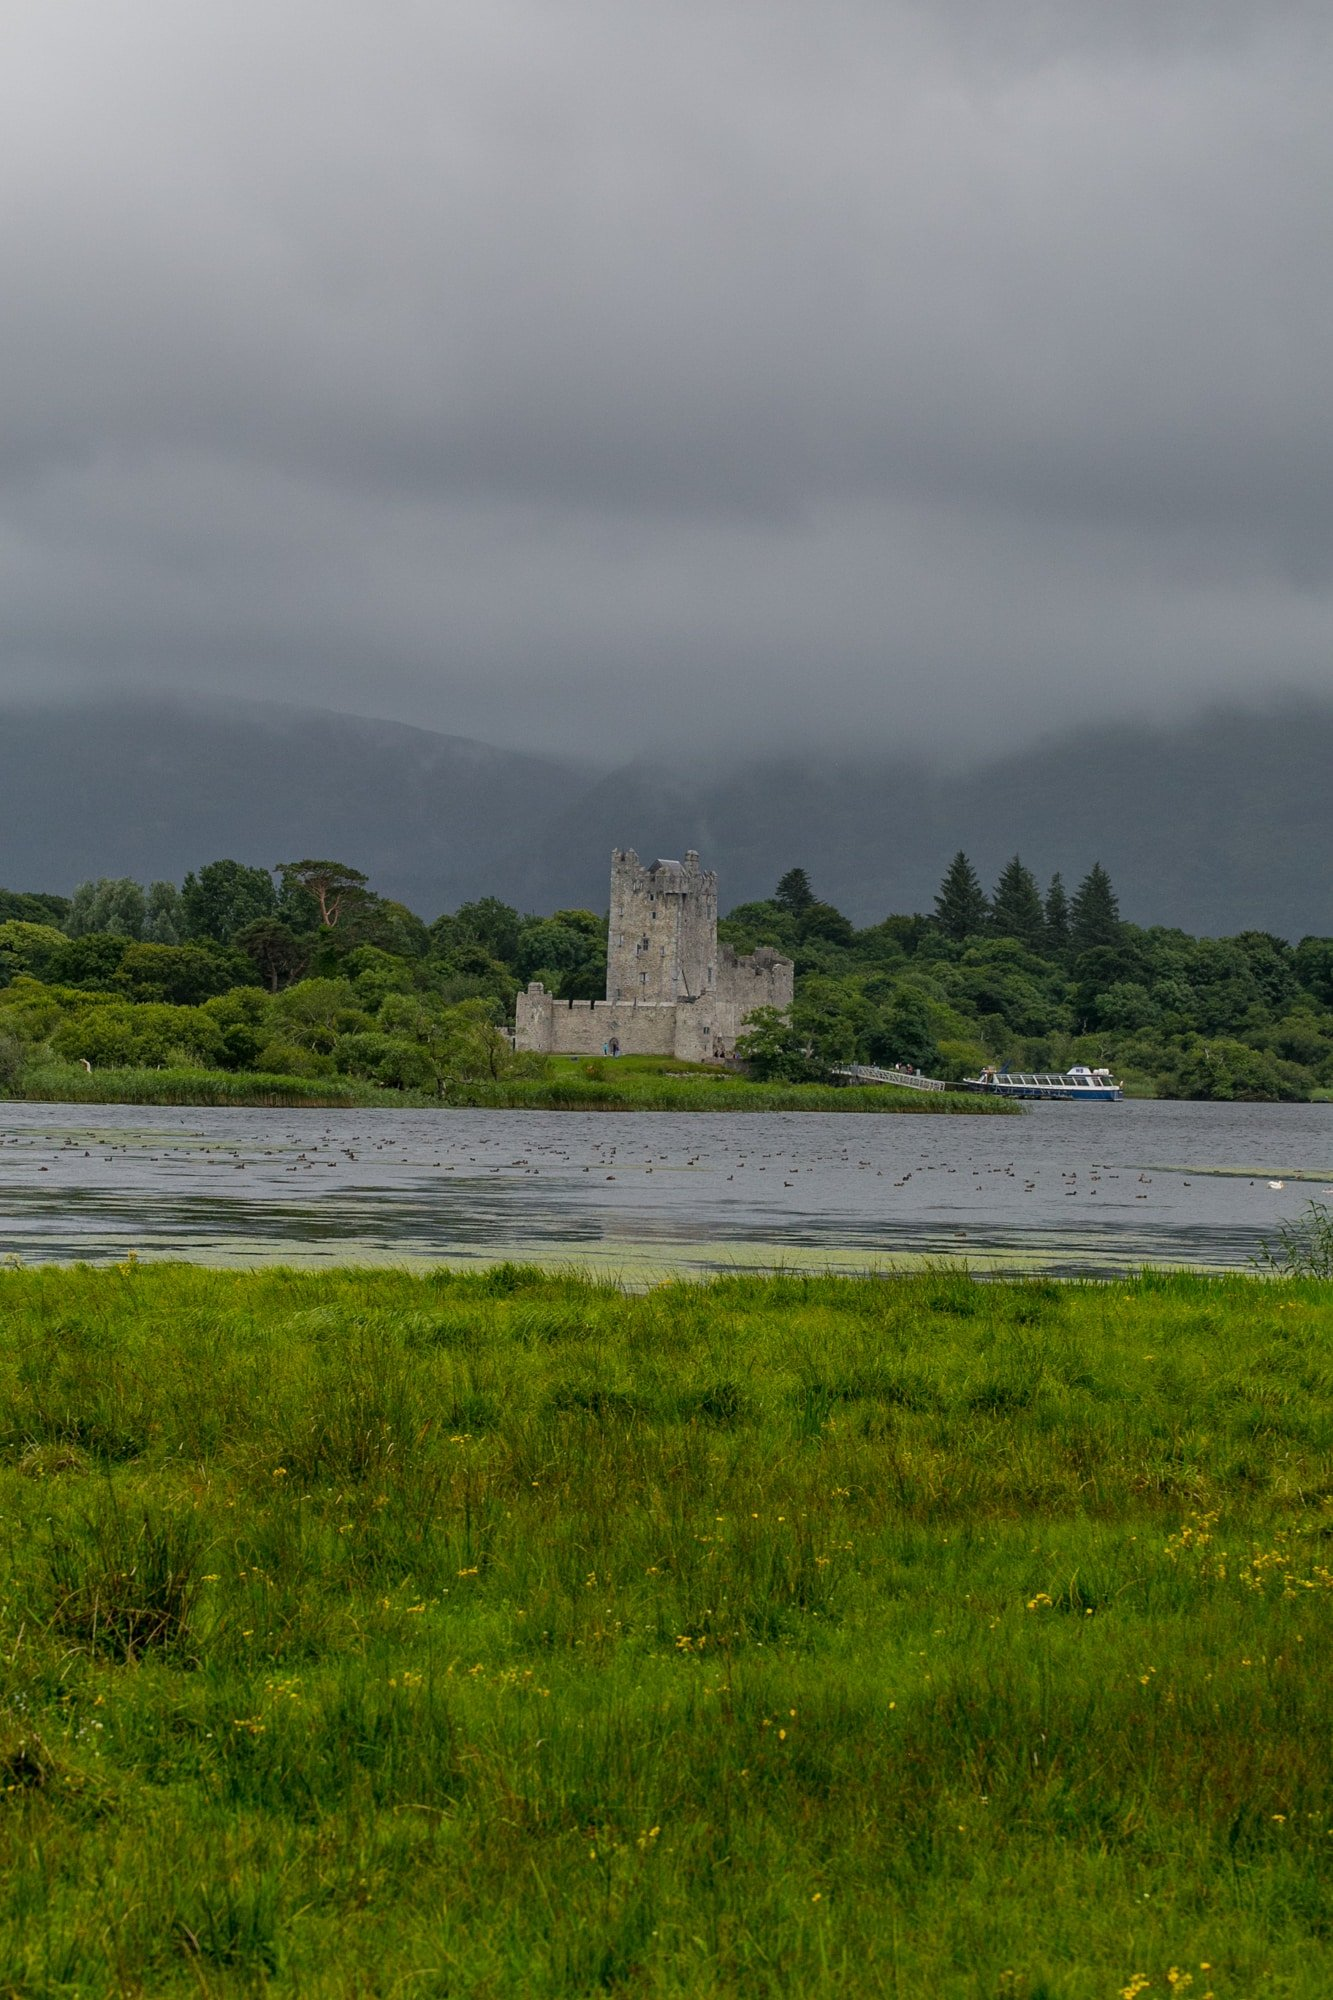 Ross Castle and Lady of the Lake Boat tour, Killarney National Park